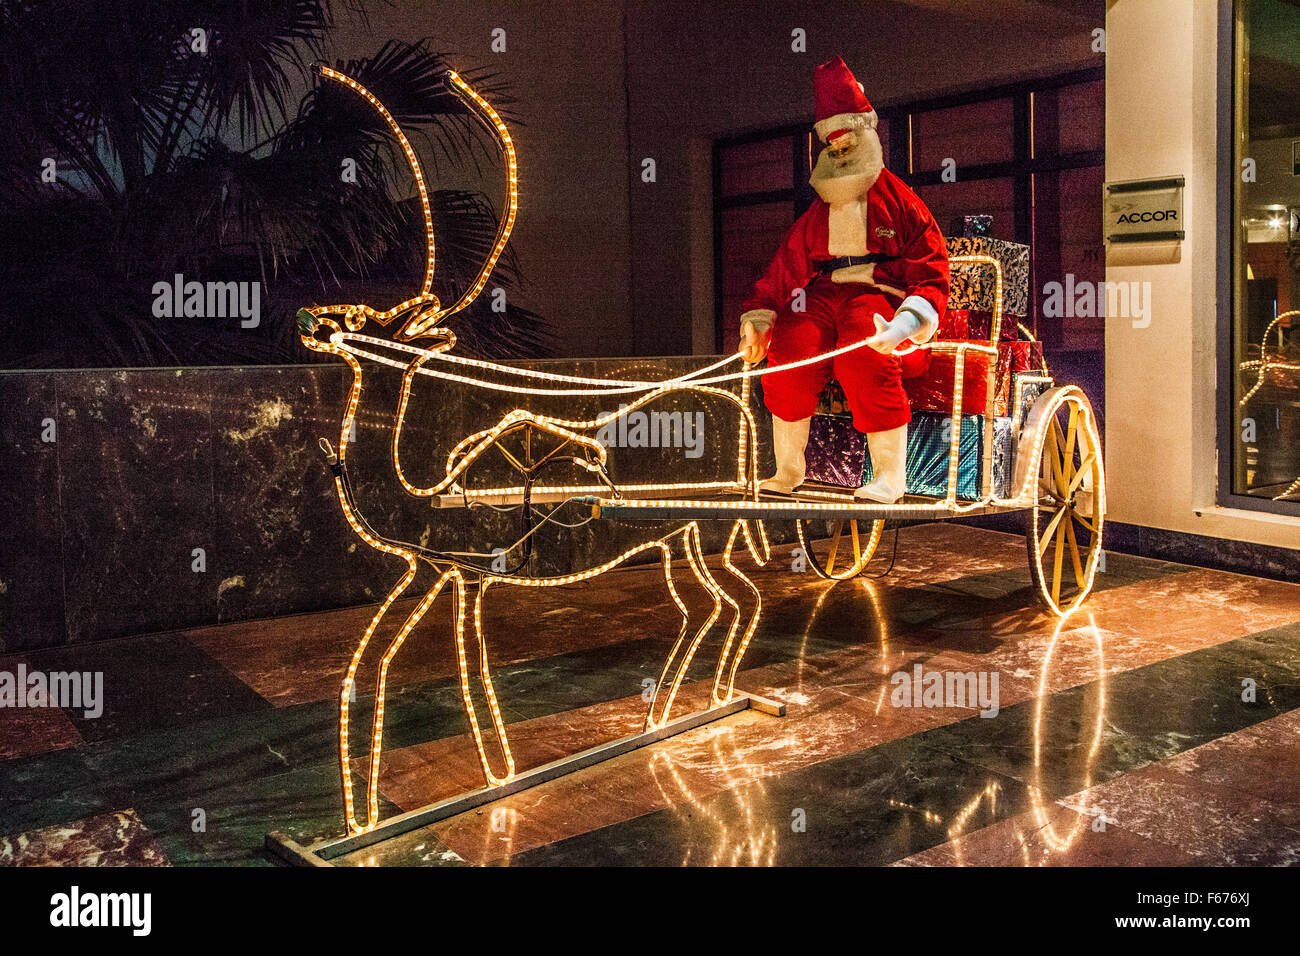 Father Christmas on his sleigh outside a hotel in Dahab, Egypt. - Stock Image